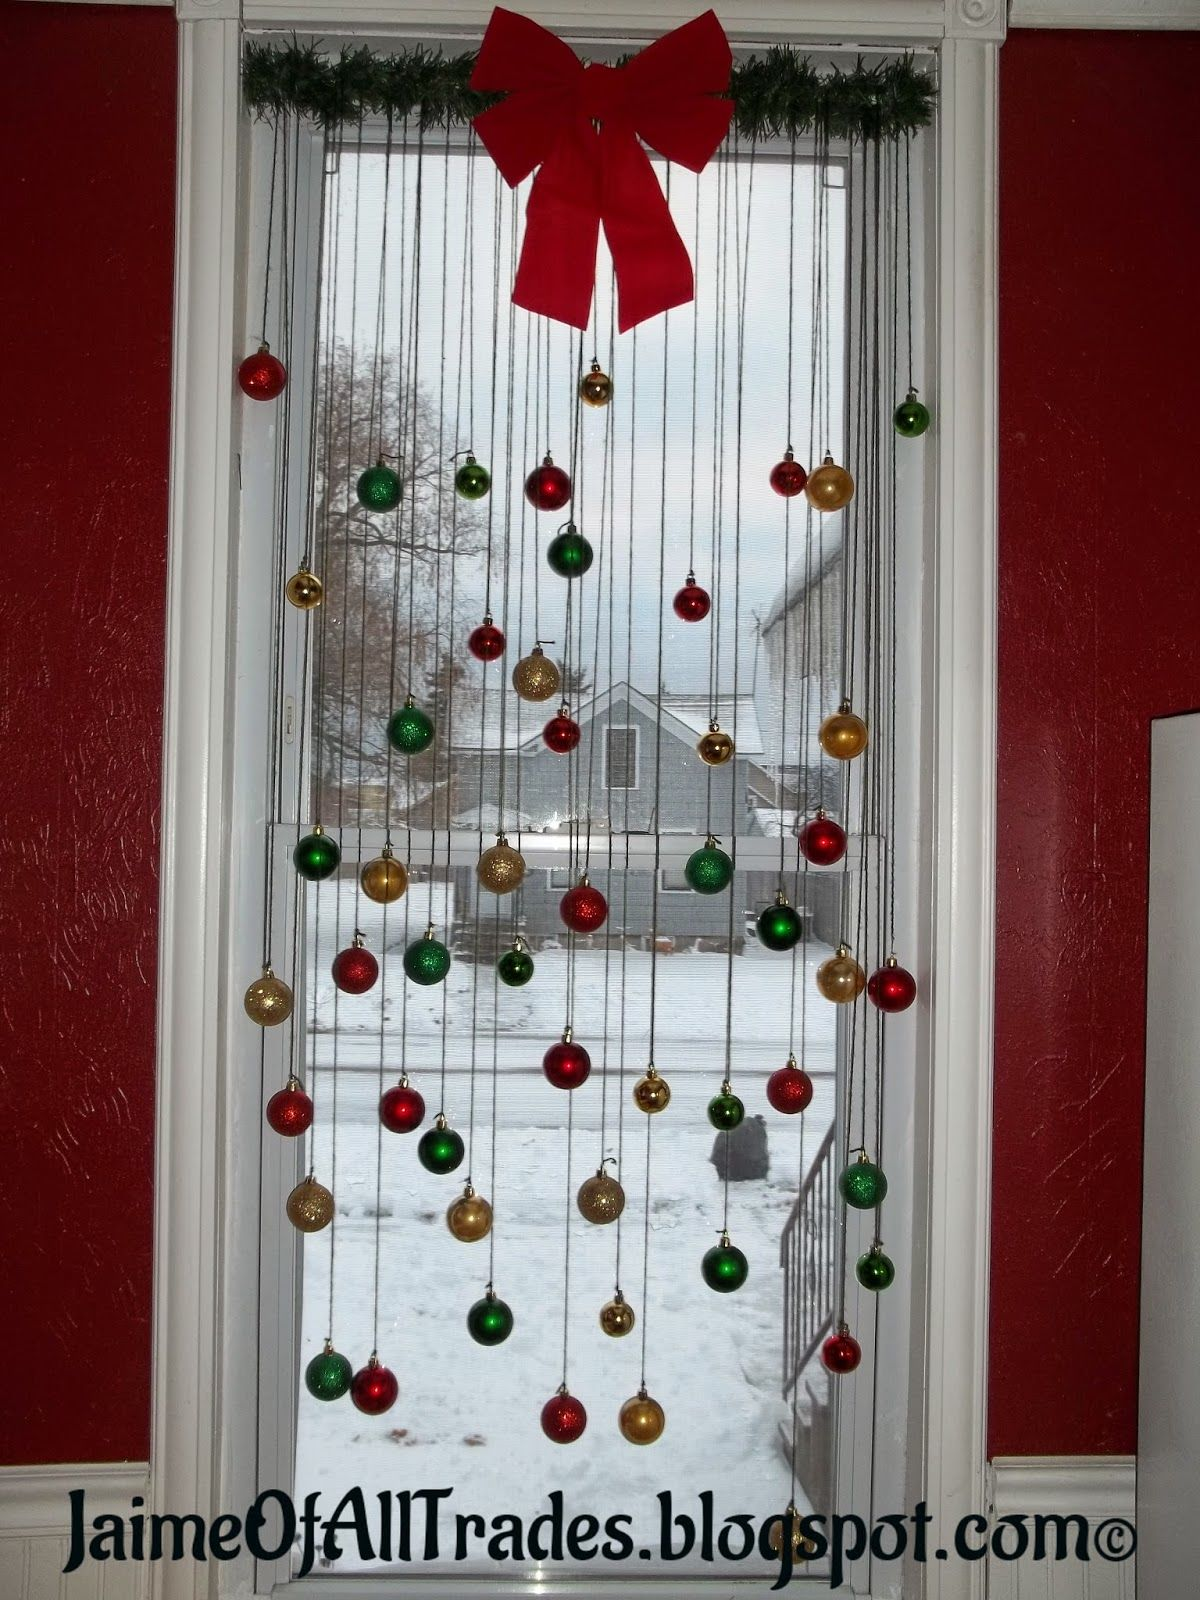 Christmas Window Ornament Decoration Pictures Photos And